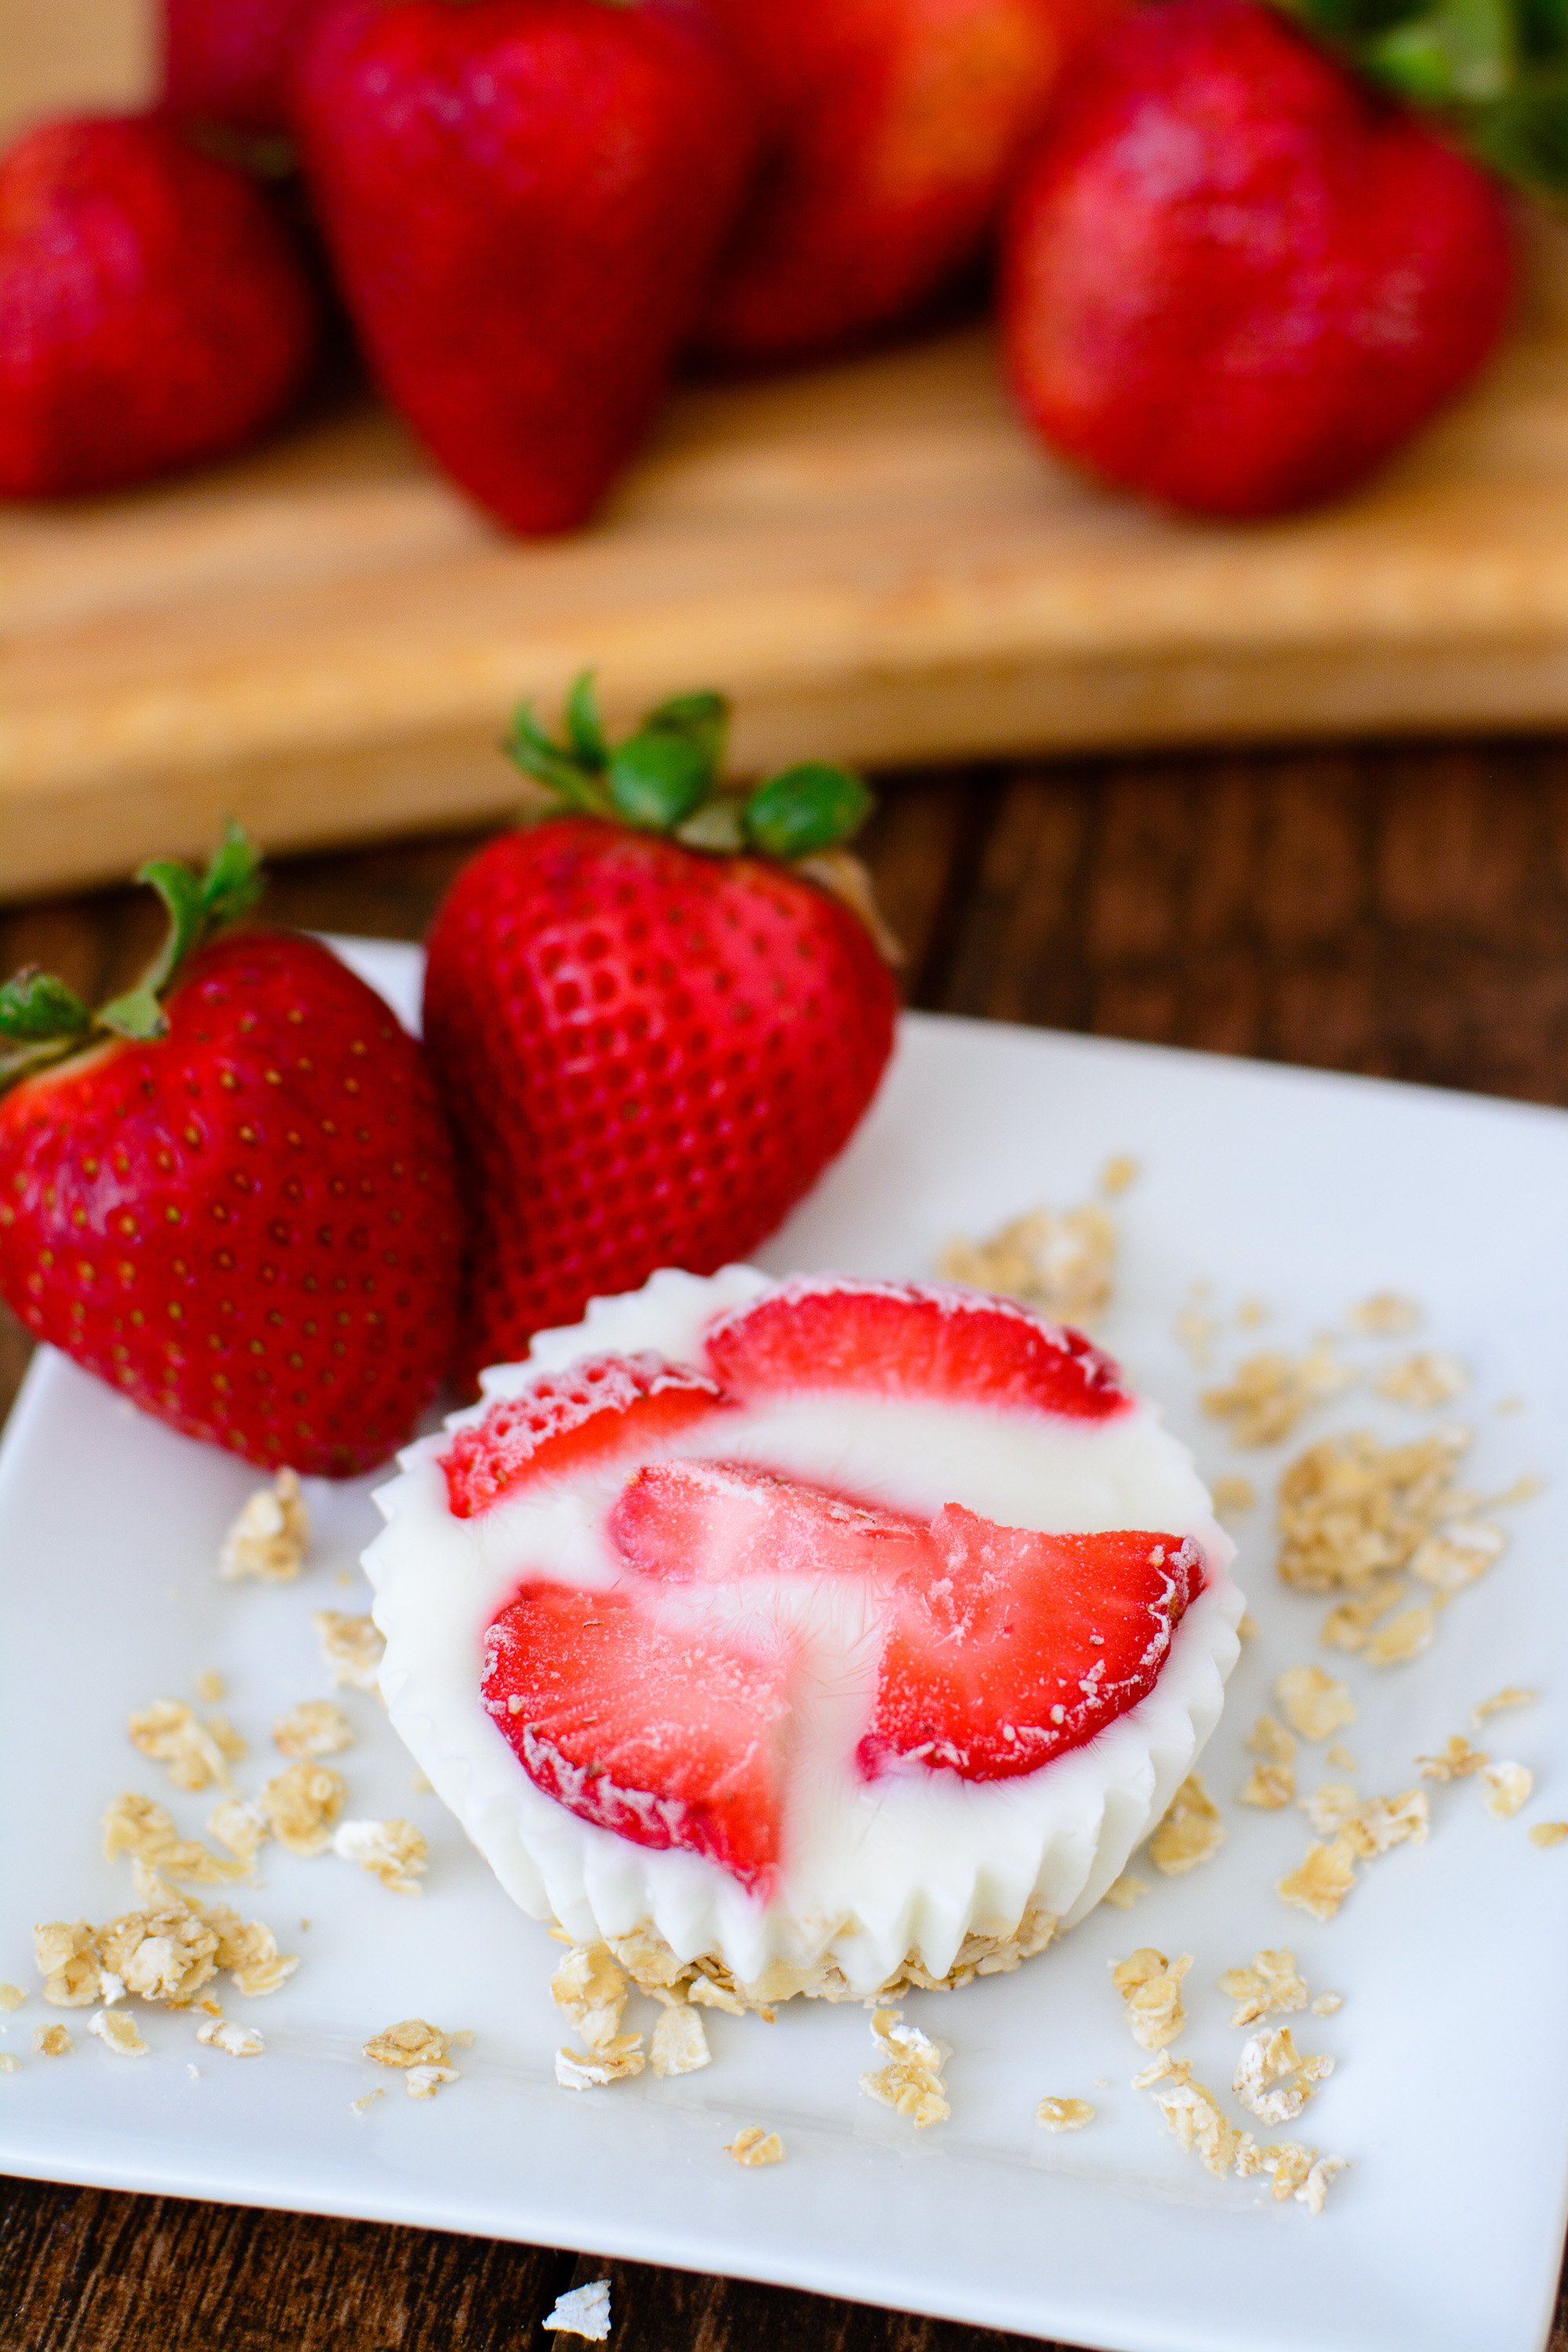 A fresh new way to enjoy yogurt! These frozen yogurt bites are great for breakfast, snack or dessert. You can even mix and match the ingredients to fit your family's tastes.